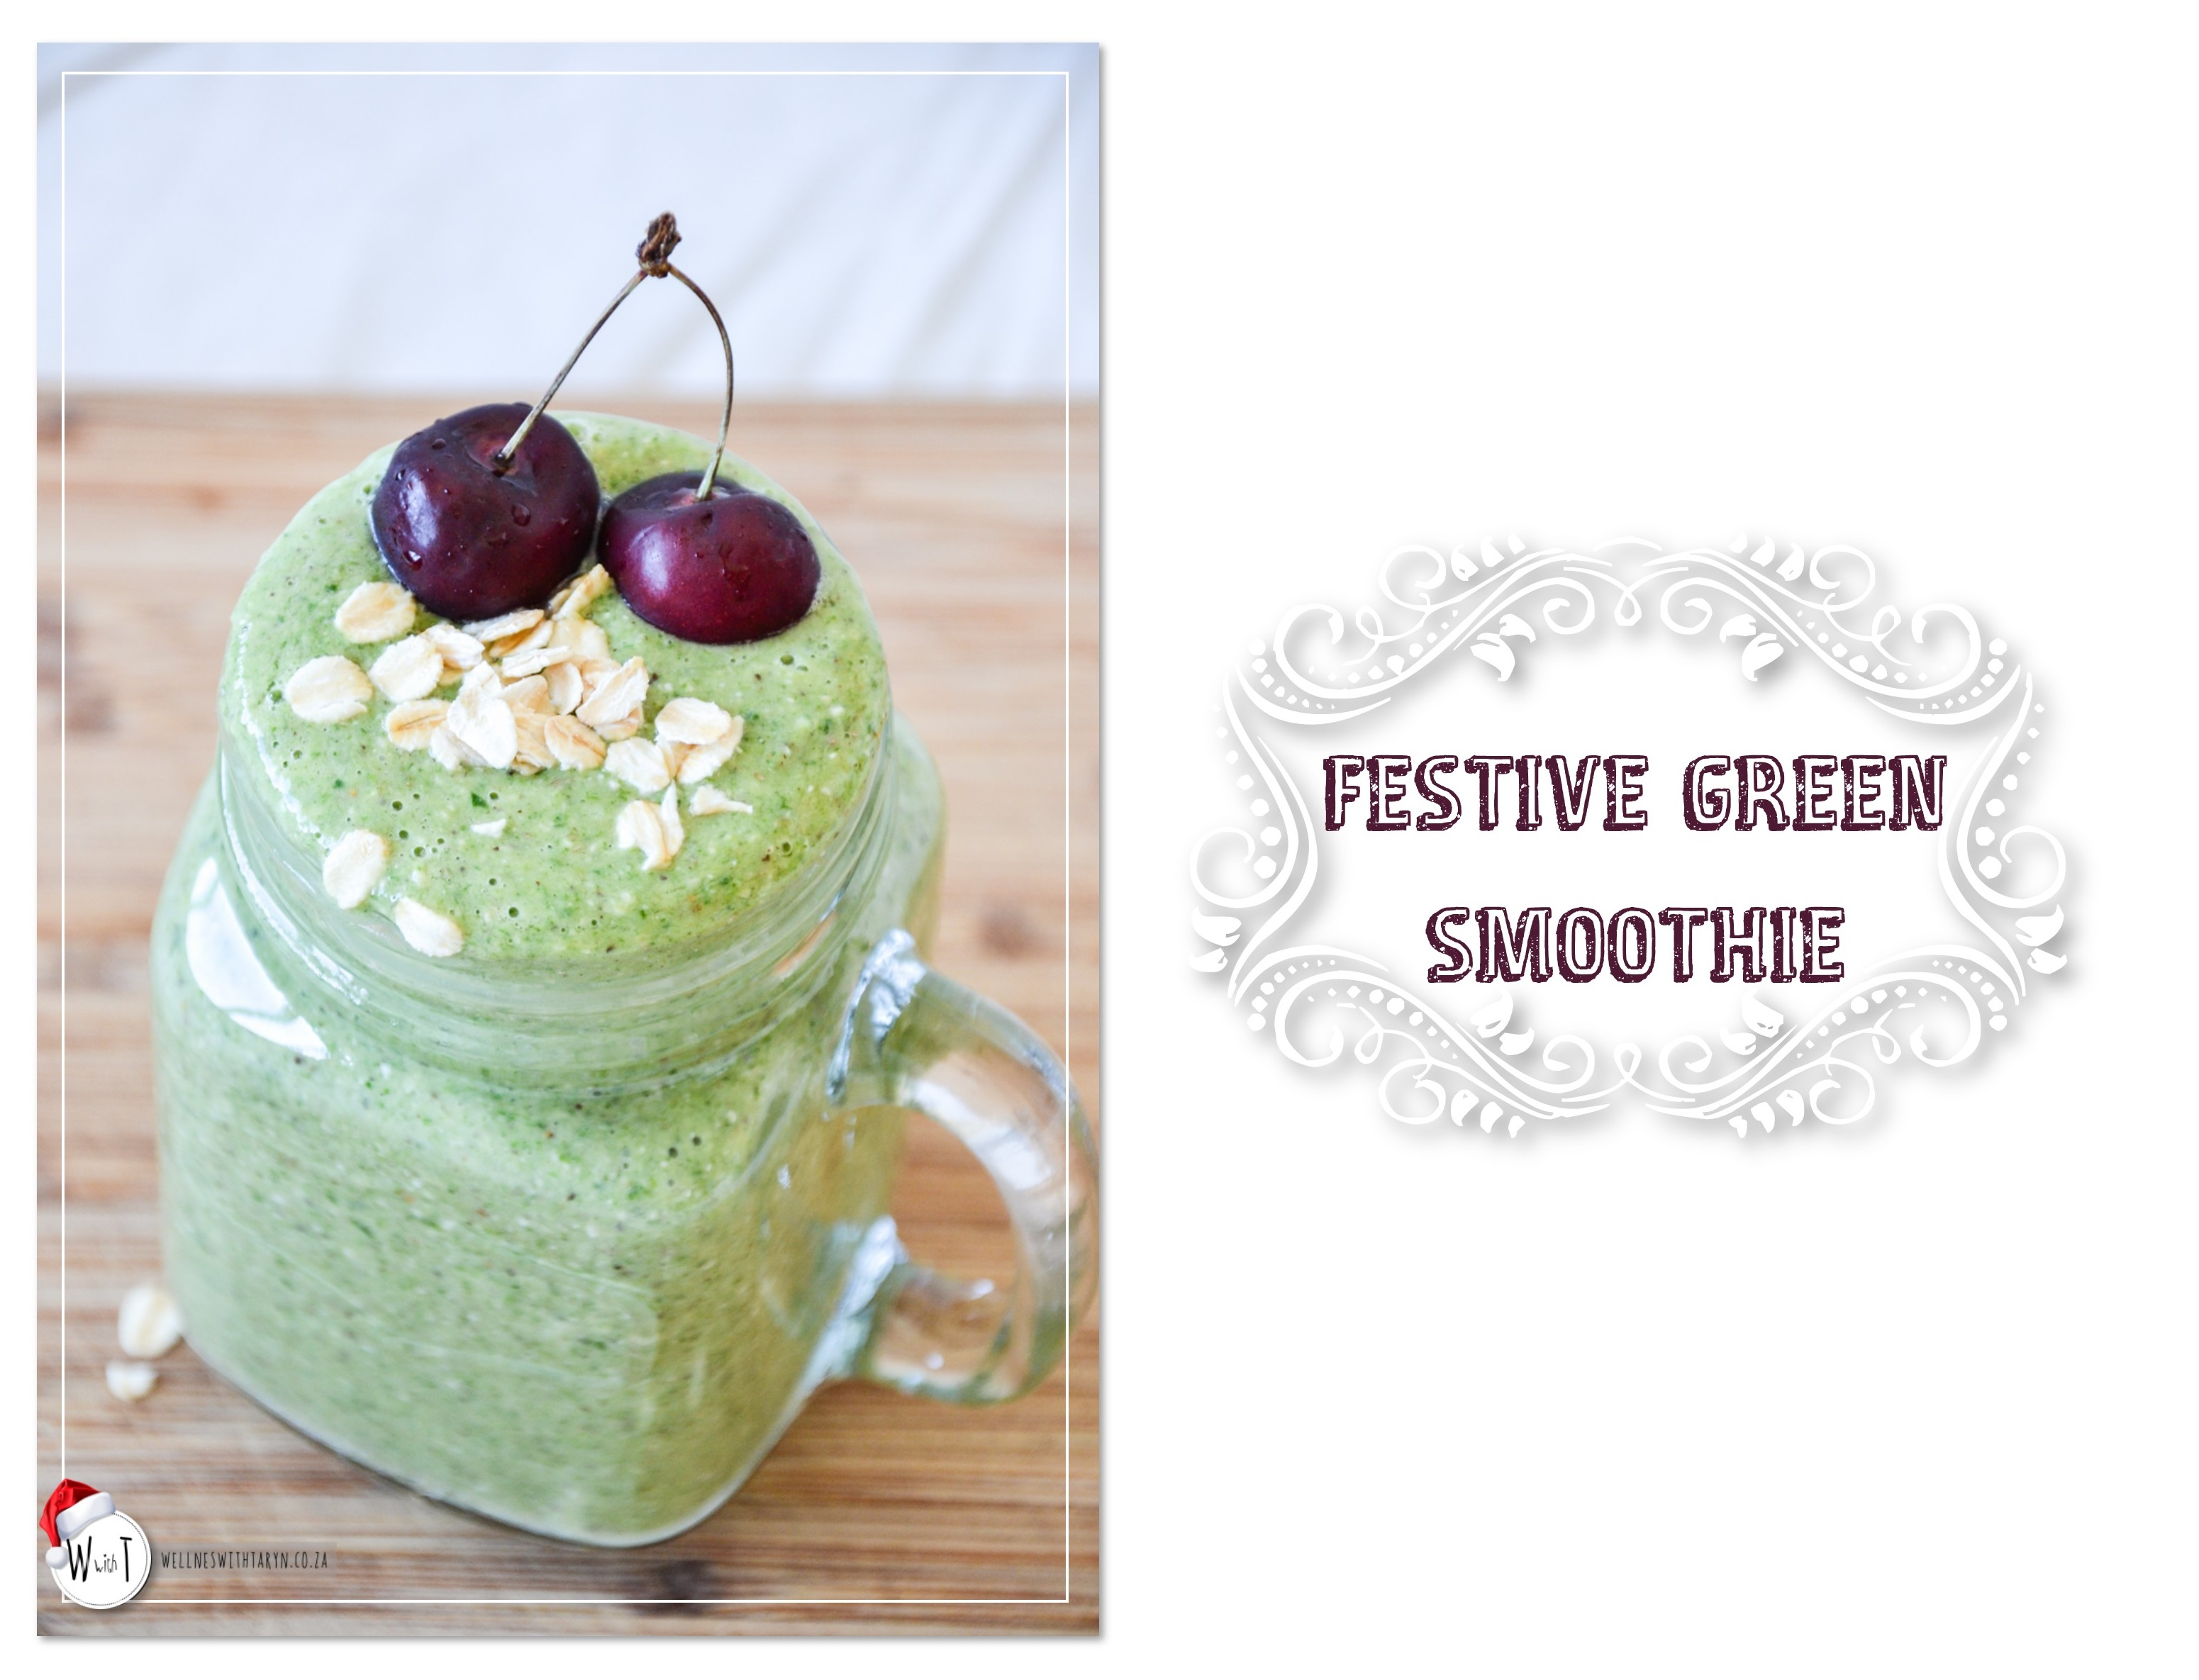 Festive Green Smoothie1